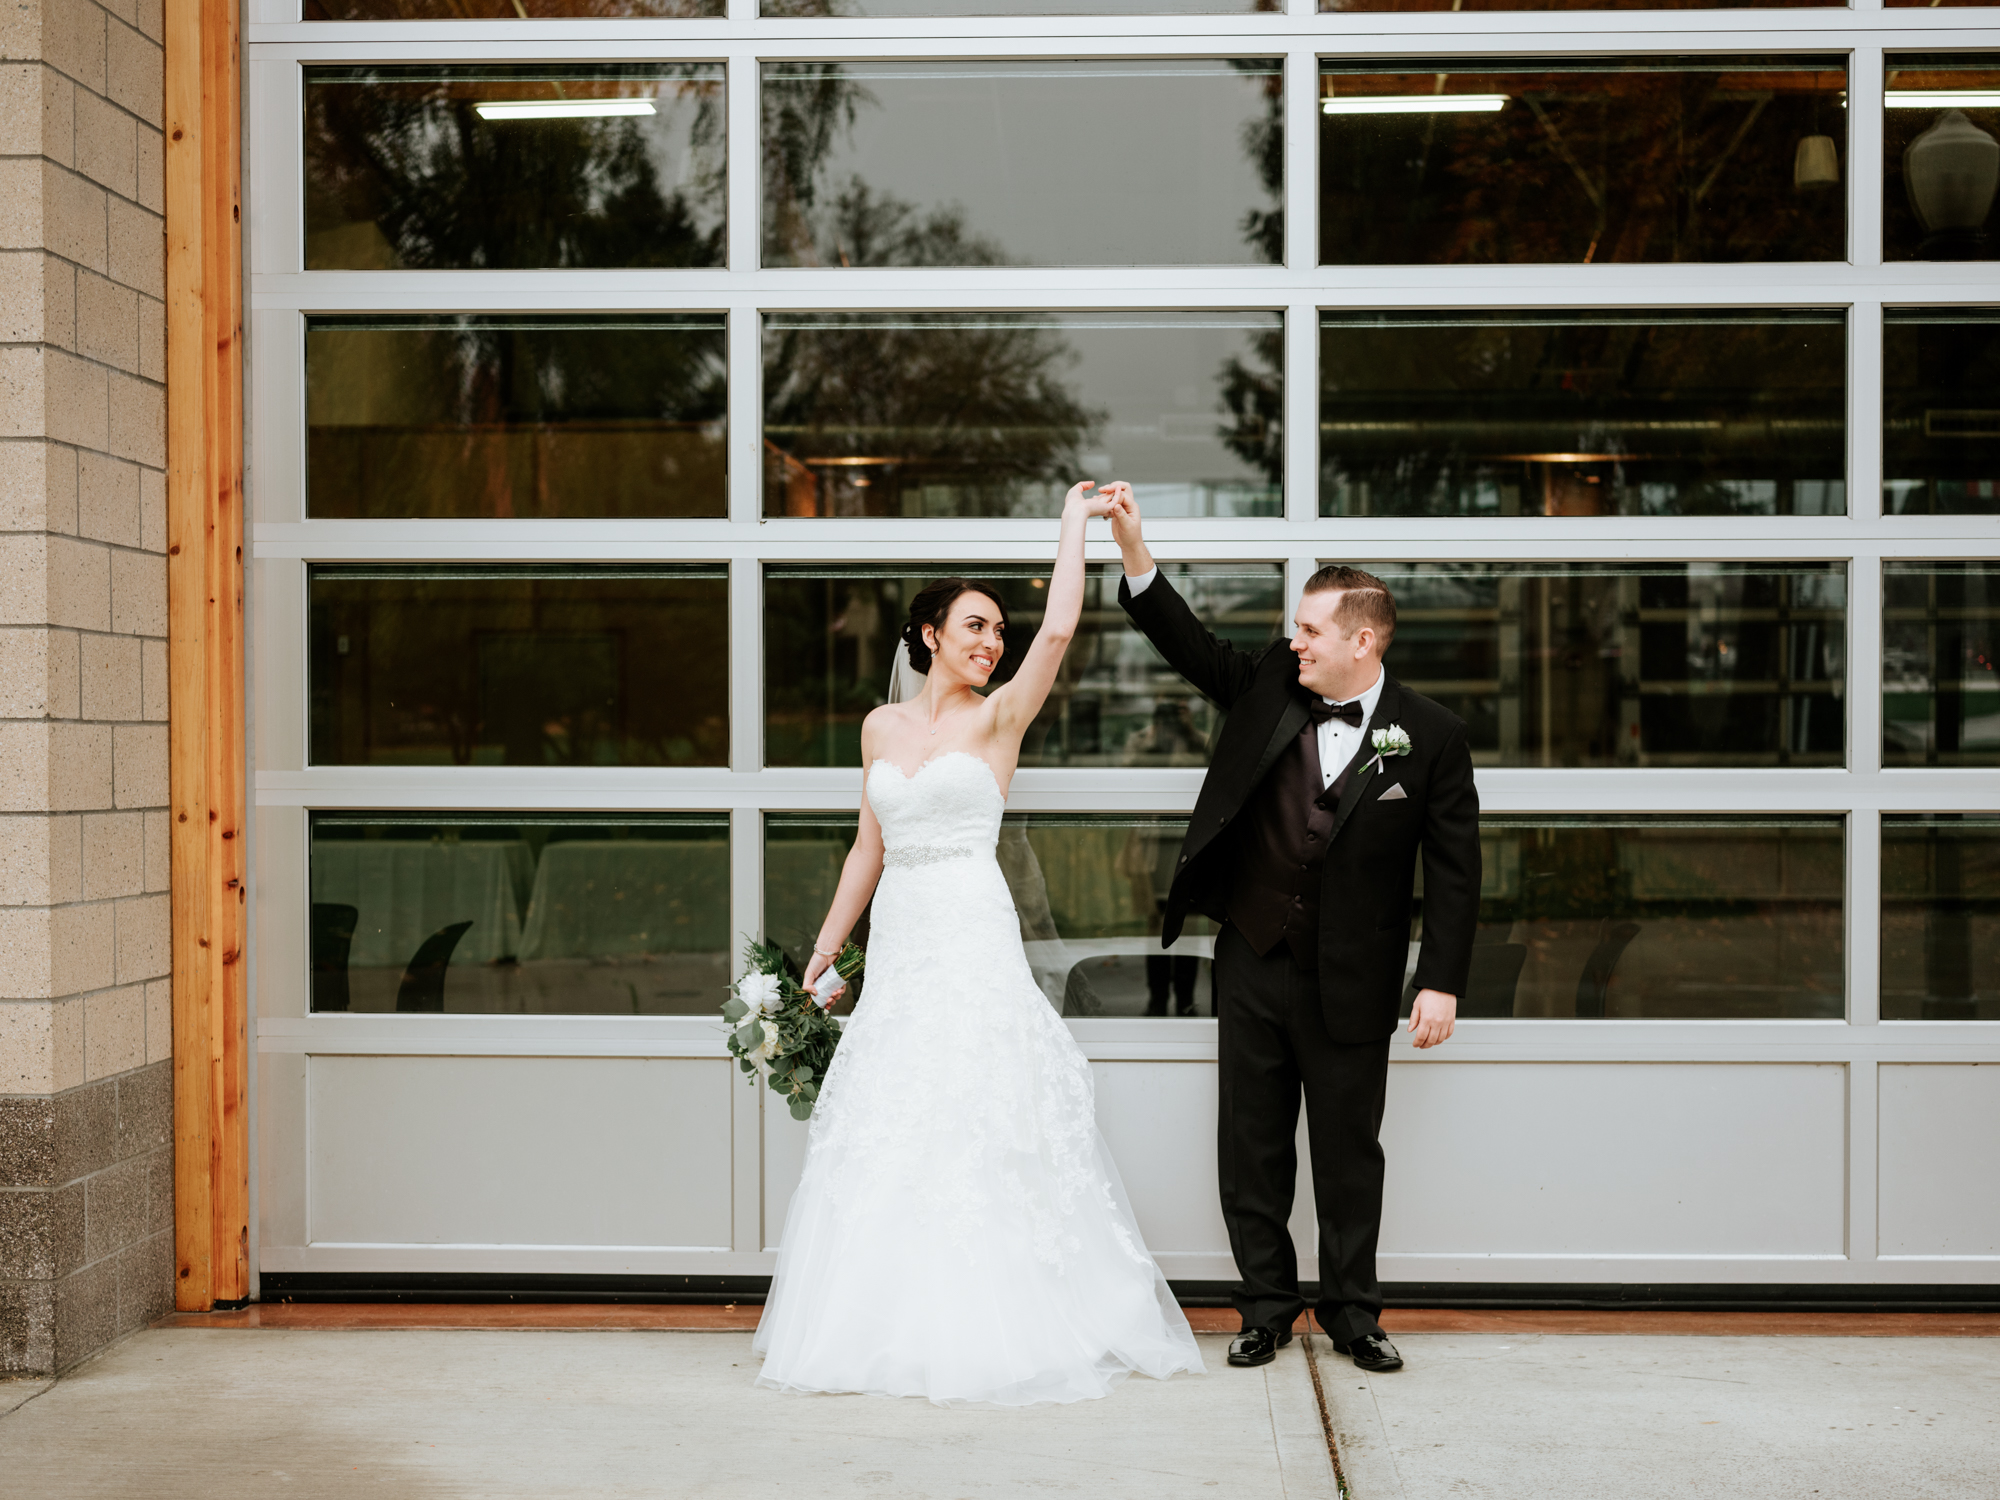 Stolen Glimpses Seattle Wedding Photographers 31.jpg